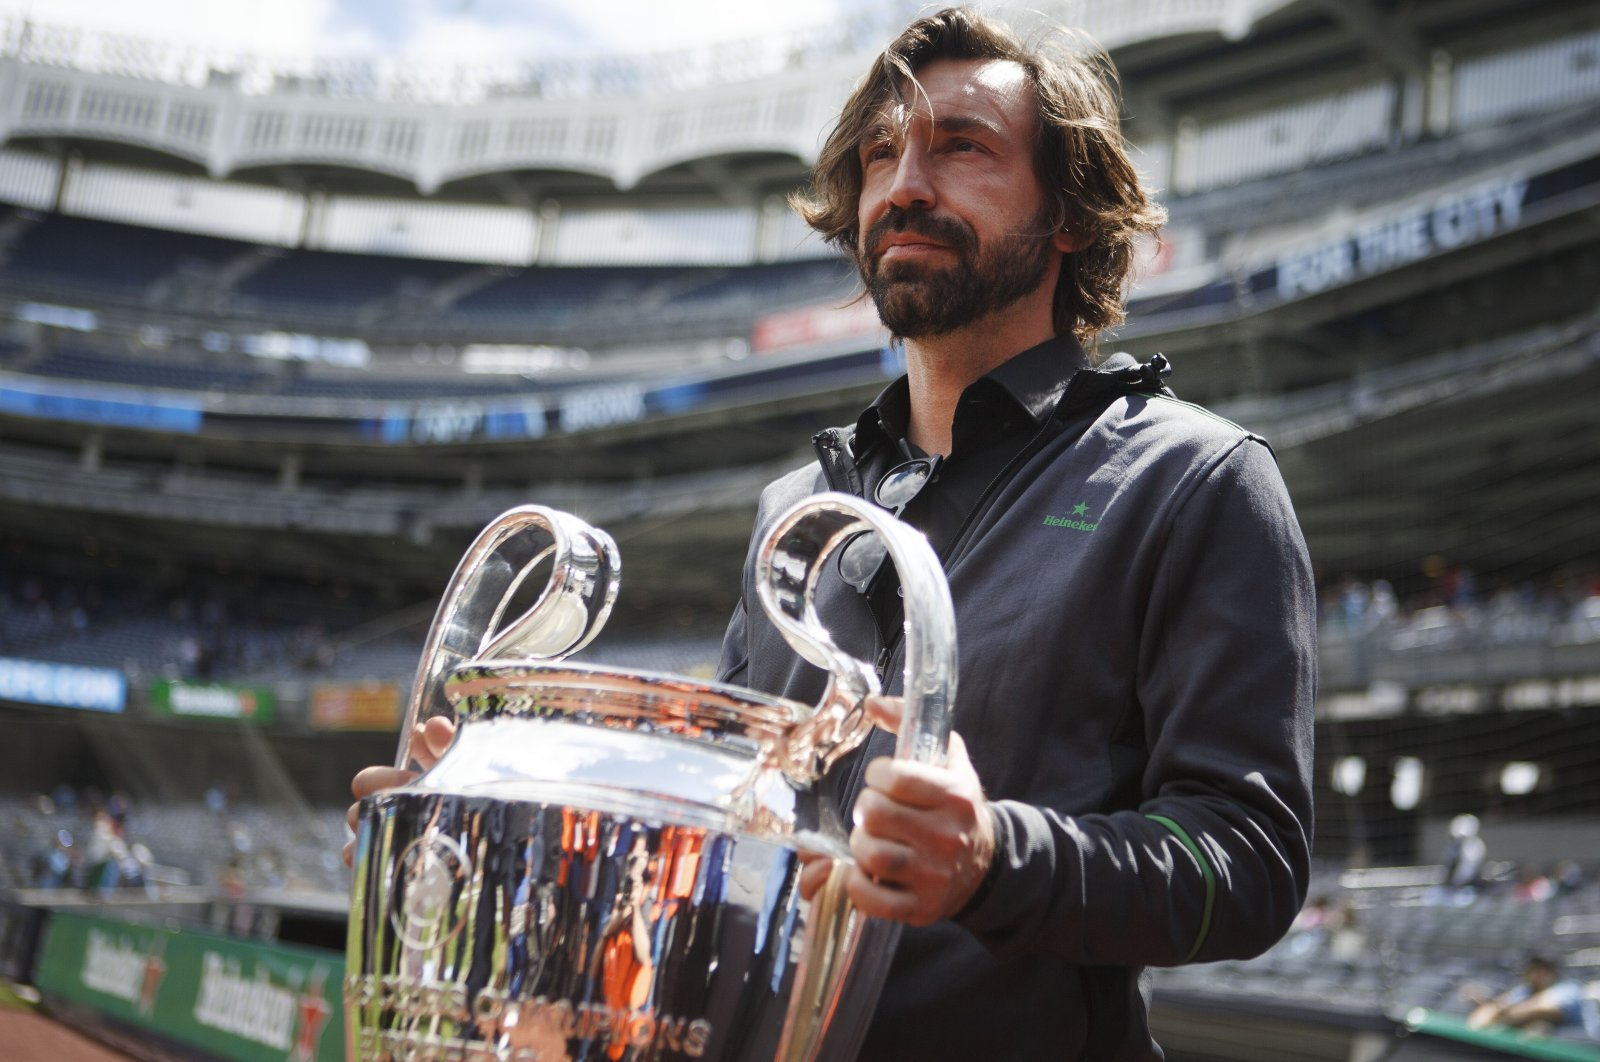 Andrea Pirlo lifts the UEFA Champions League Trophy during a special event held at Yankee Stadium in New York, U.S., Sept. 27, 2019. (AP Photo)